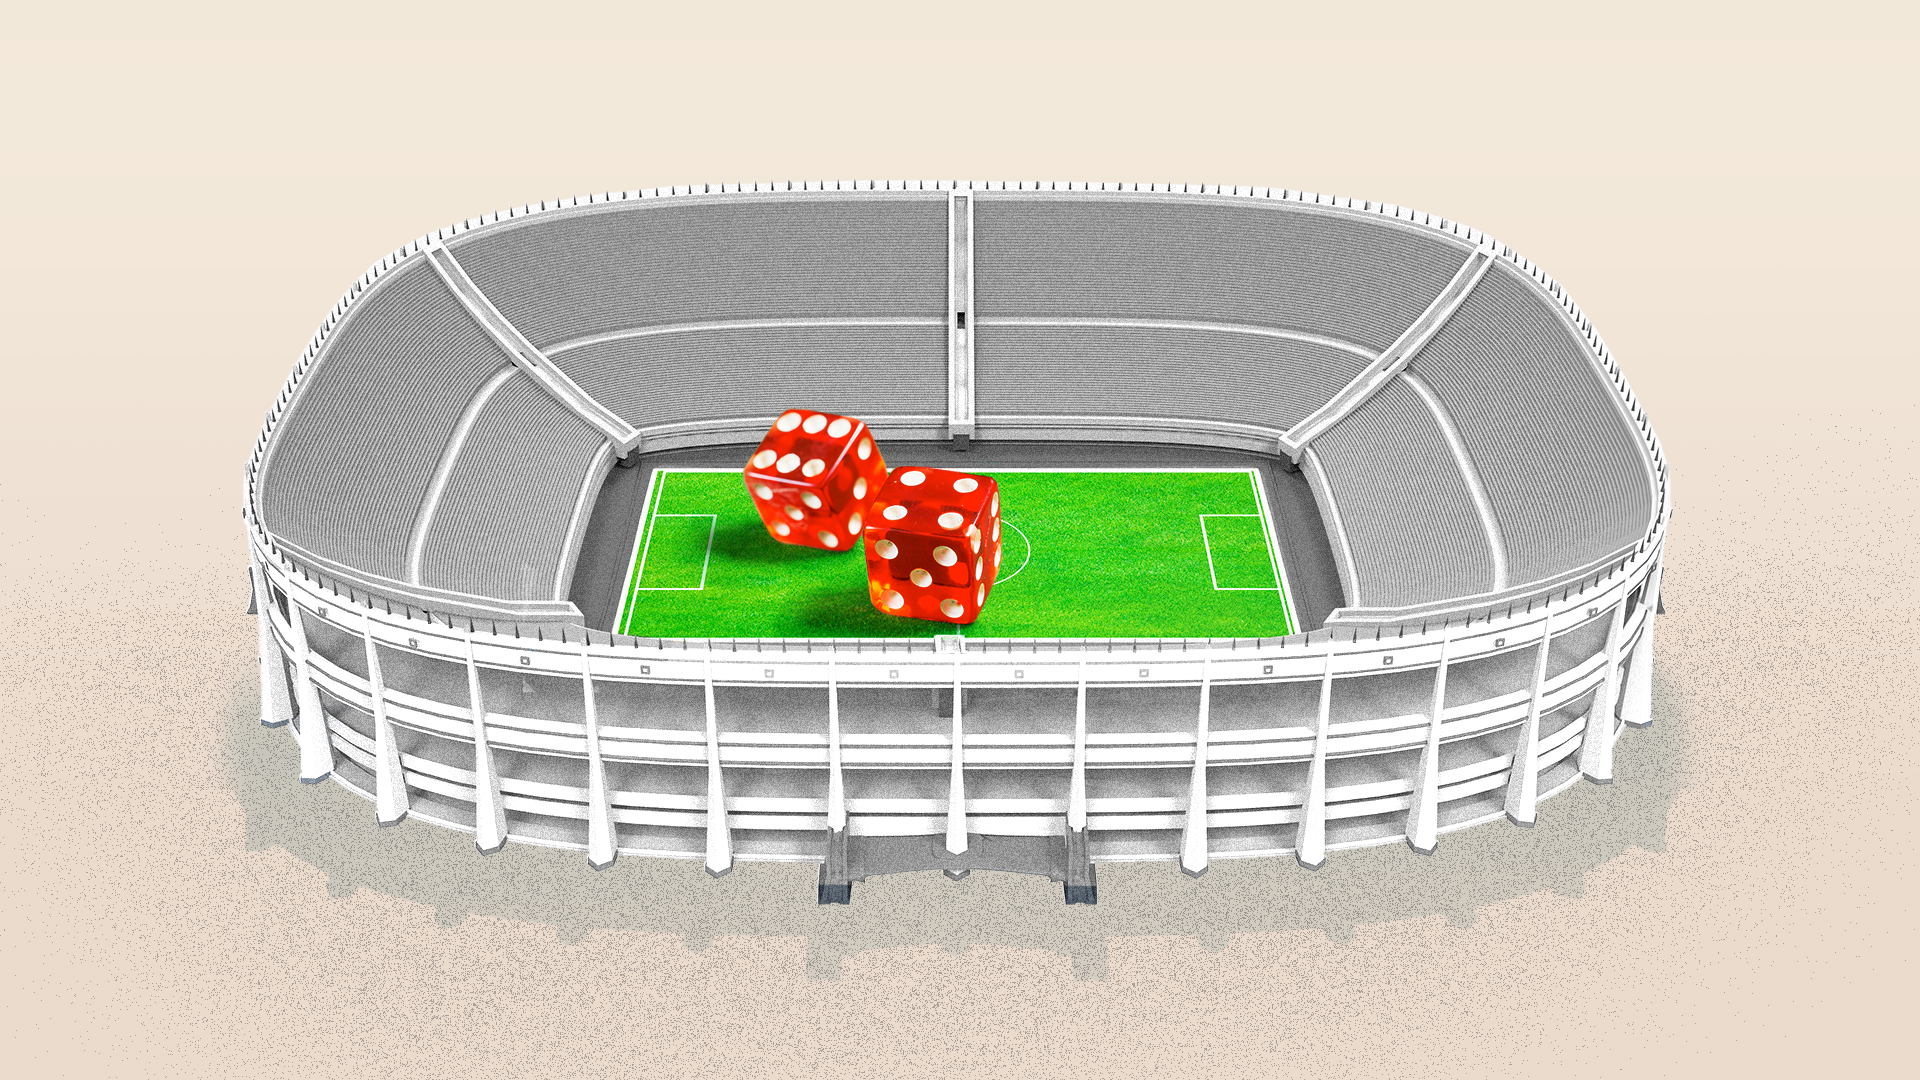 In this illustration, a pair of giant red dice sit on the green turf of a small stadium.